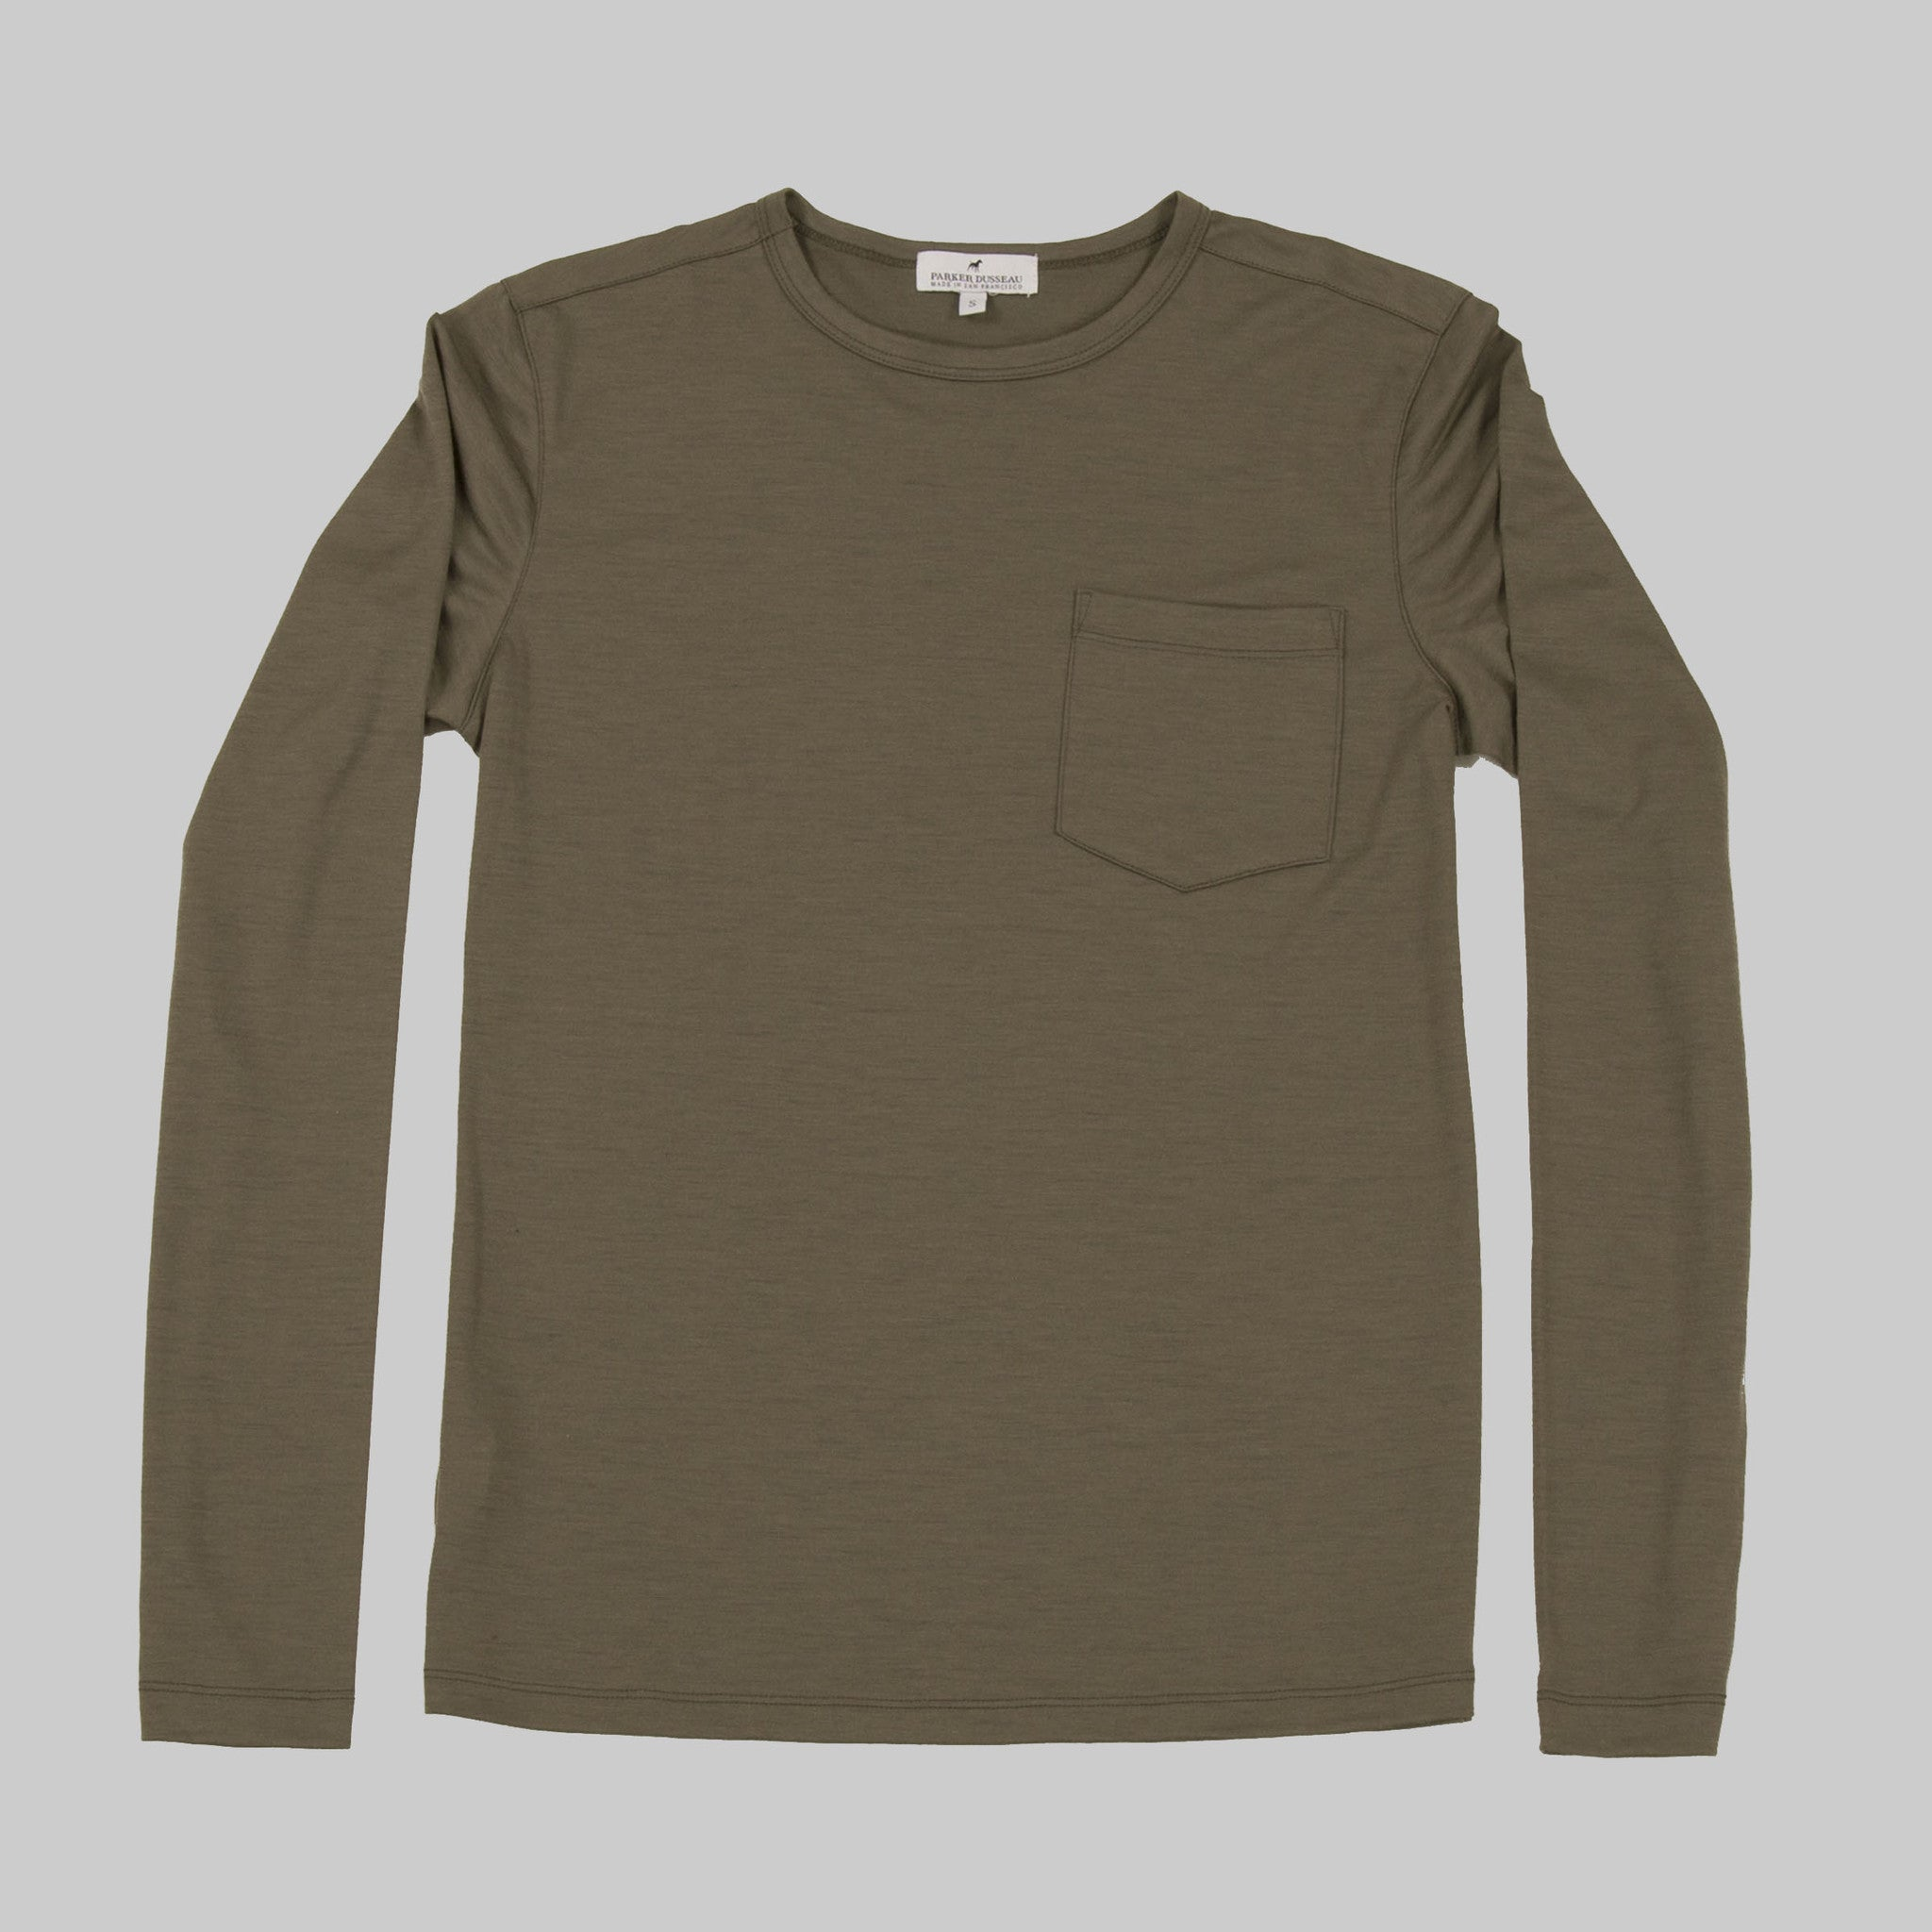 100% Merino Wool Long Sleeve Tee - Army Long Sleeve Merino Tee- Parker Dusseau : Functional Menswear Essentials for the Always Ready Lifestyle. Based in San Francisco, California